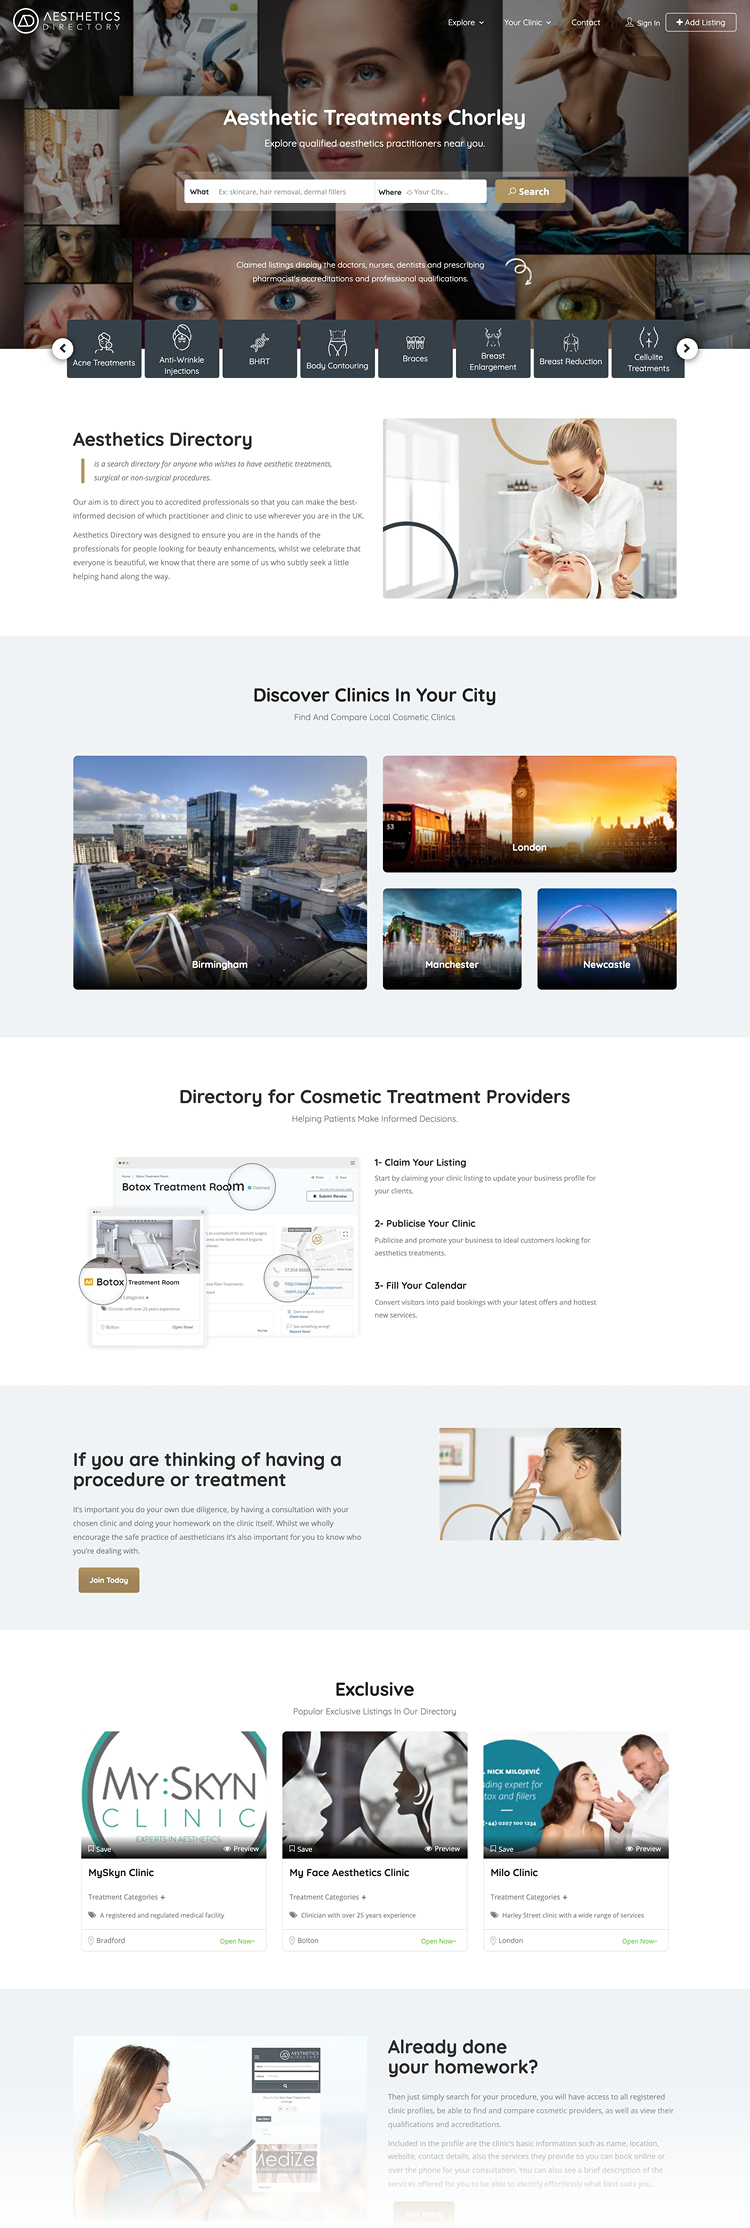 A full page screenshot of the Aesthetics Directory homepage